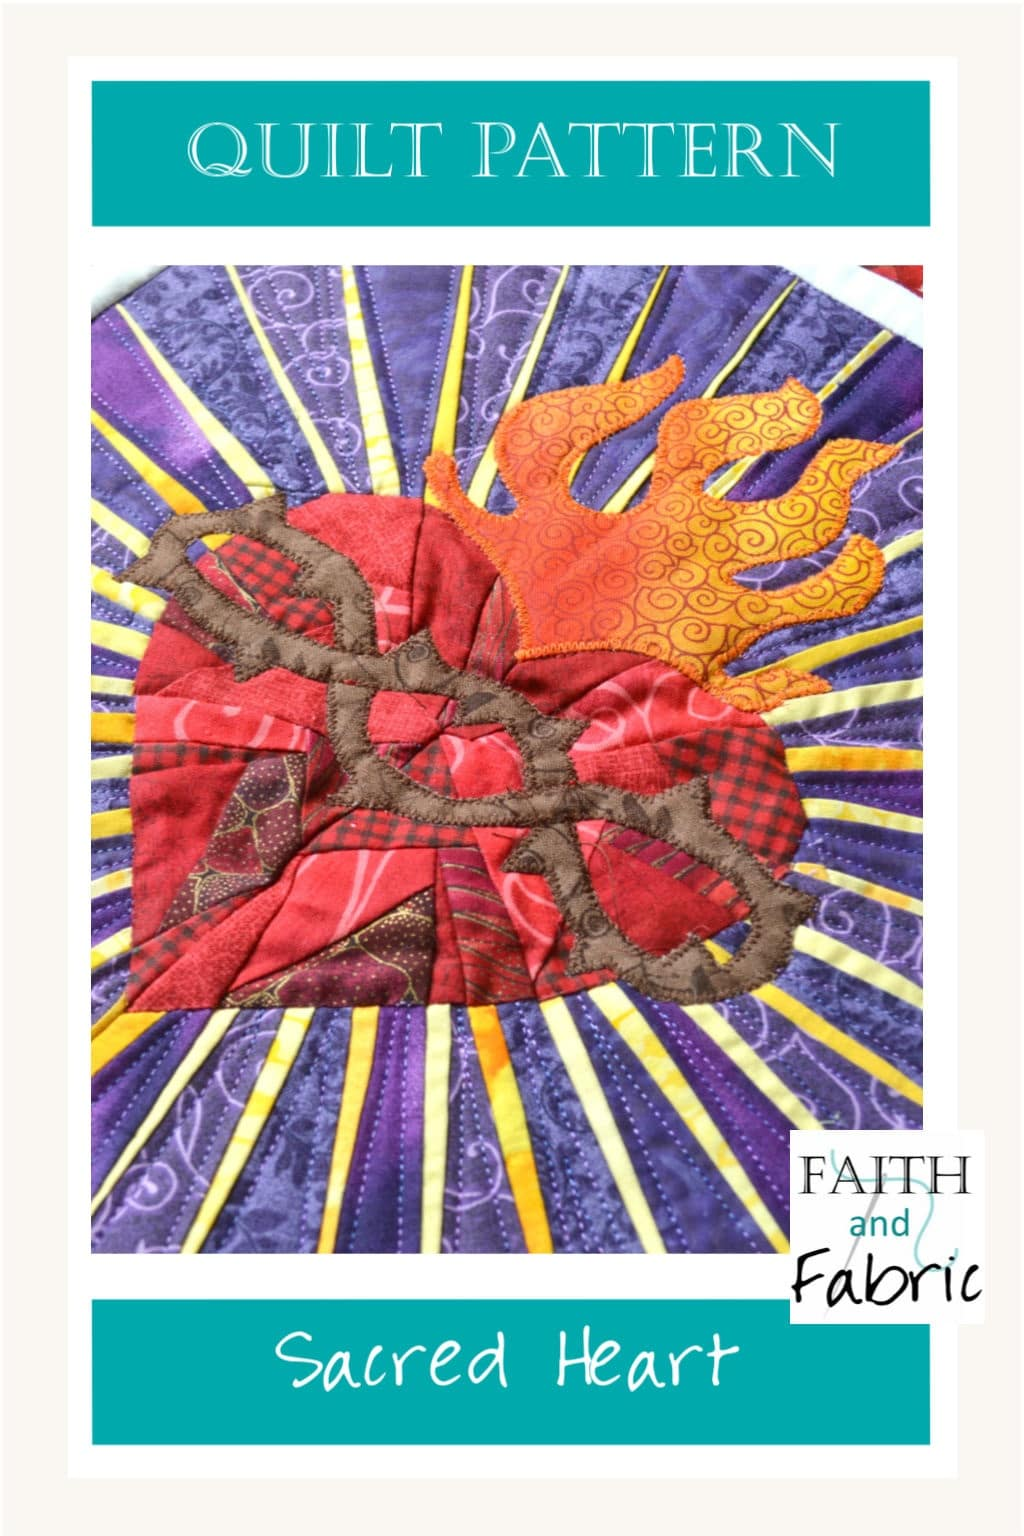 Celebrate the mystery of the Sacred Heart! This Sacred Heart quilt pattern combines foundation paper piece within the heart and radiant rays, applique flames and crown of thorns, and both traditional and improv piecing for the finishing details.